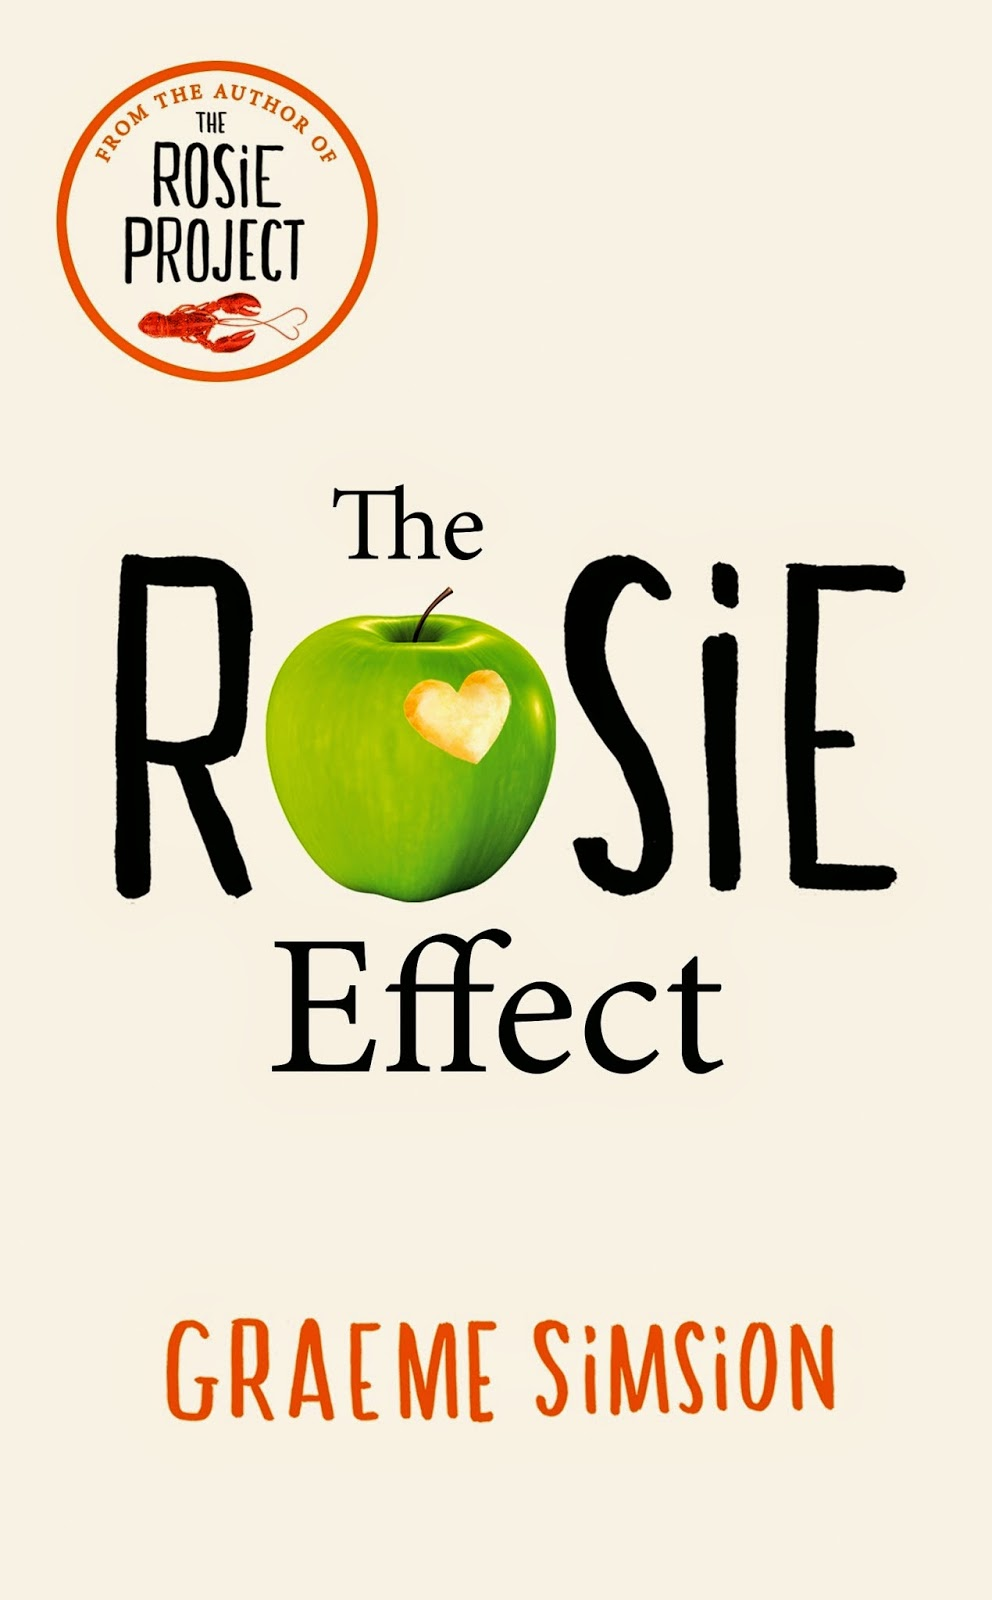 The Rosie Project By Graeme Simsion Swiftly Became One Of My Favourite Bookst  Out Of A Rut And Acted A Welcome Antidote To Homesickness When I Was Living